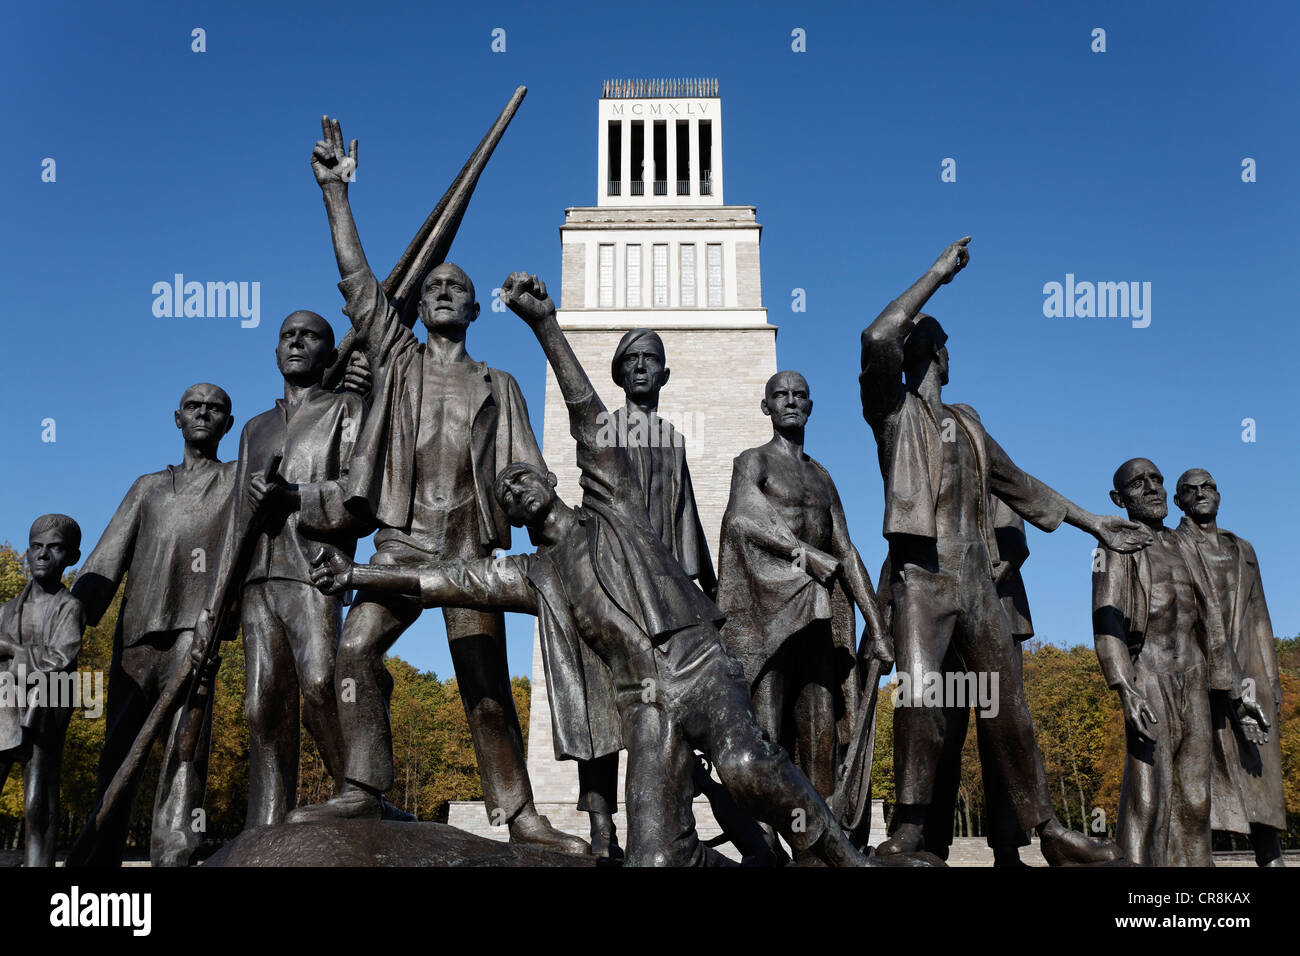 Resistance fighters, group of statues by Fritz Cremer, monument on Ettersberg mountain, Gedenkstaette Buchenwald - Stock Image